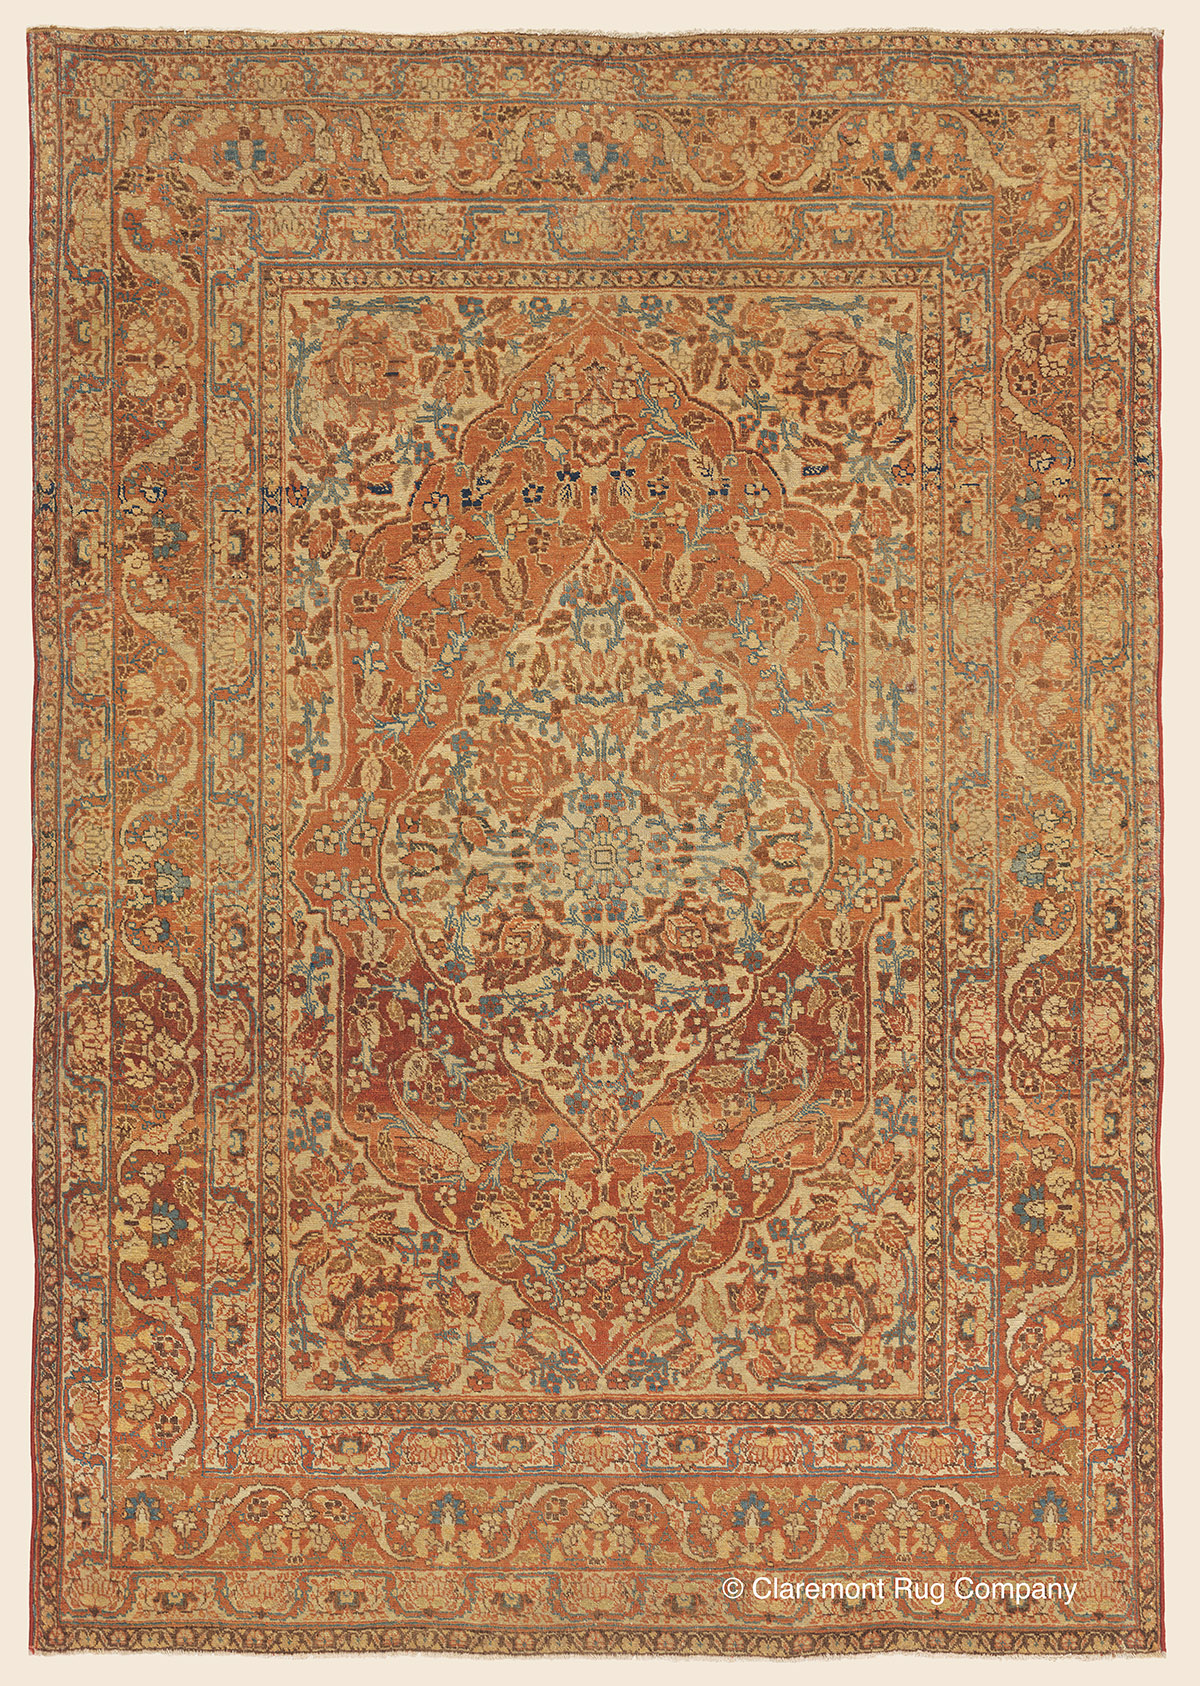 19th century Antique Tabriz Carpet from Master Rug Designer Hadji Jallili in hues of terracotta